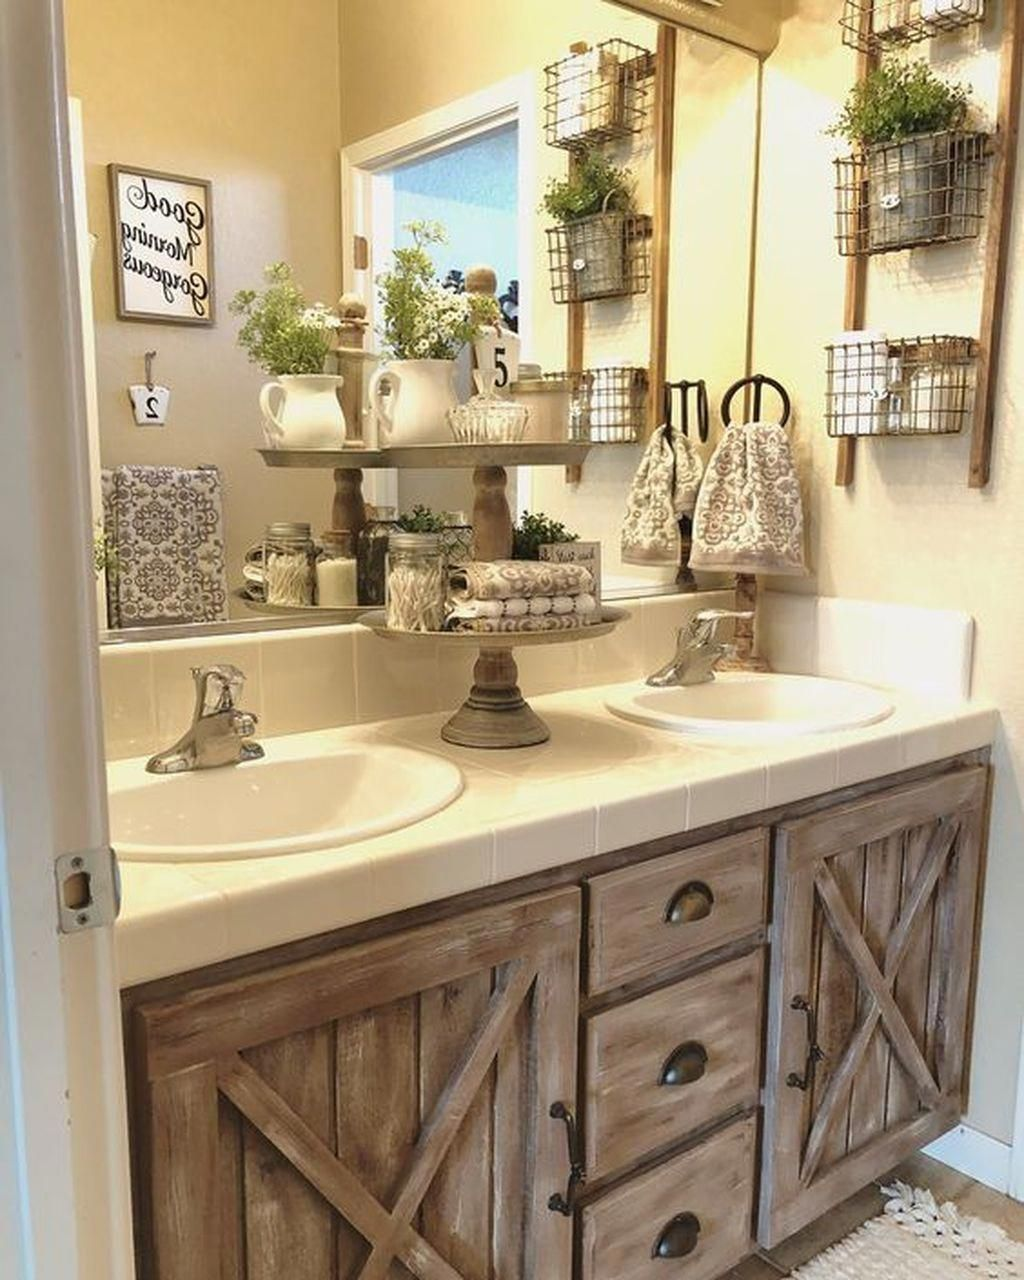 Blazing Questioned Country Style Home Decor Southern Living Anchor Bathroom Vanity Decor Bathroom Decor Farmhouse Bathroom Decor Country themed bathroom decor